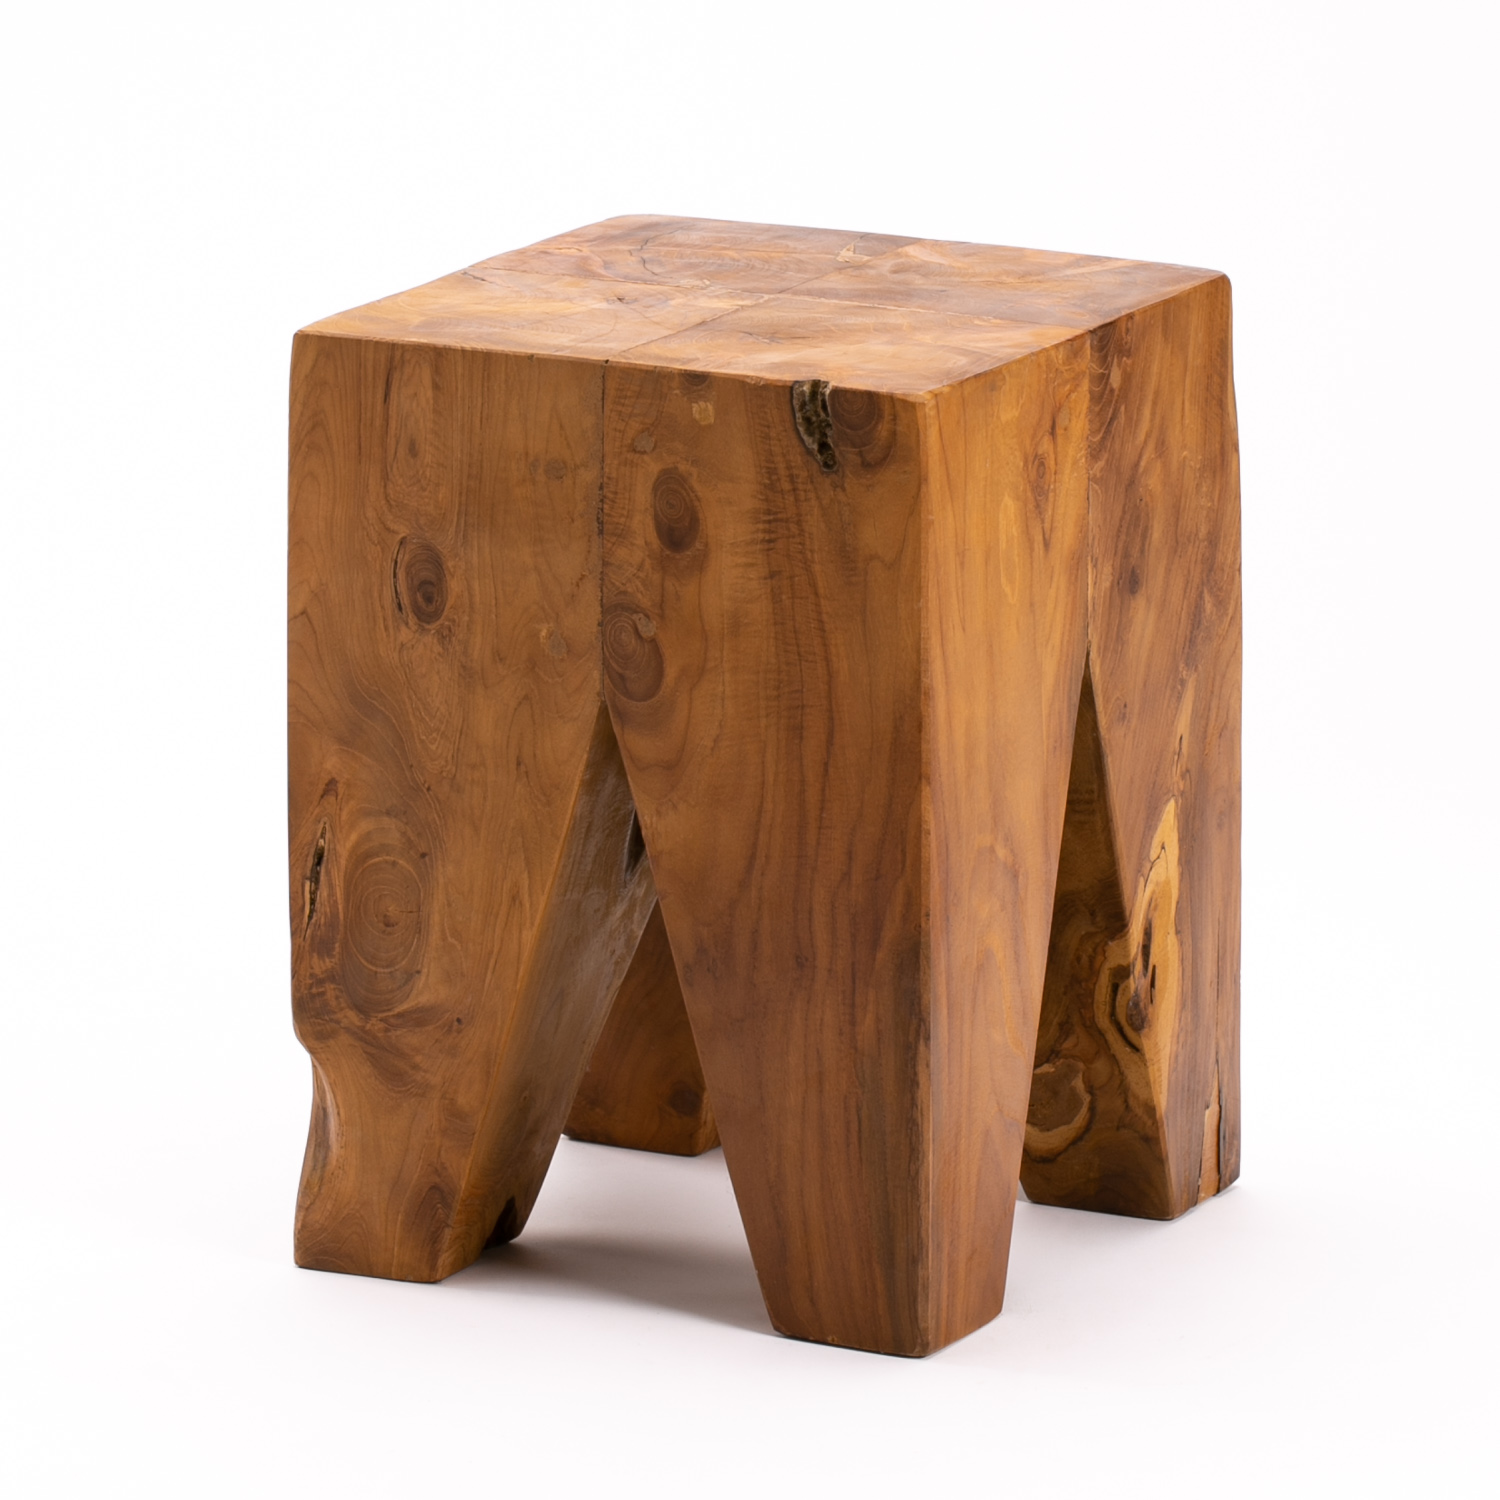 SOLID ROOT 30cm SQUARE STOOL 4 LEGS